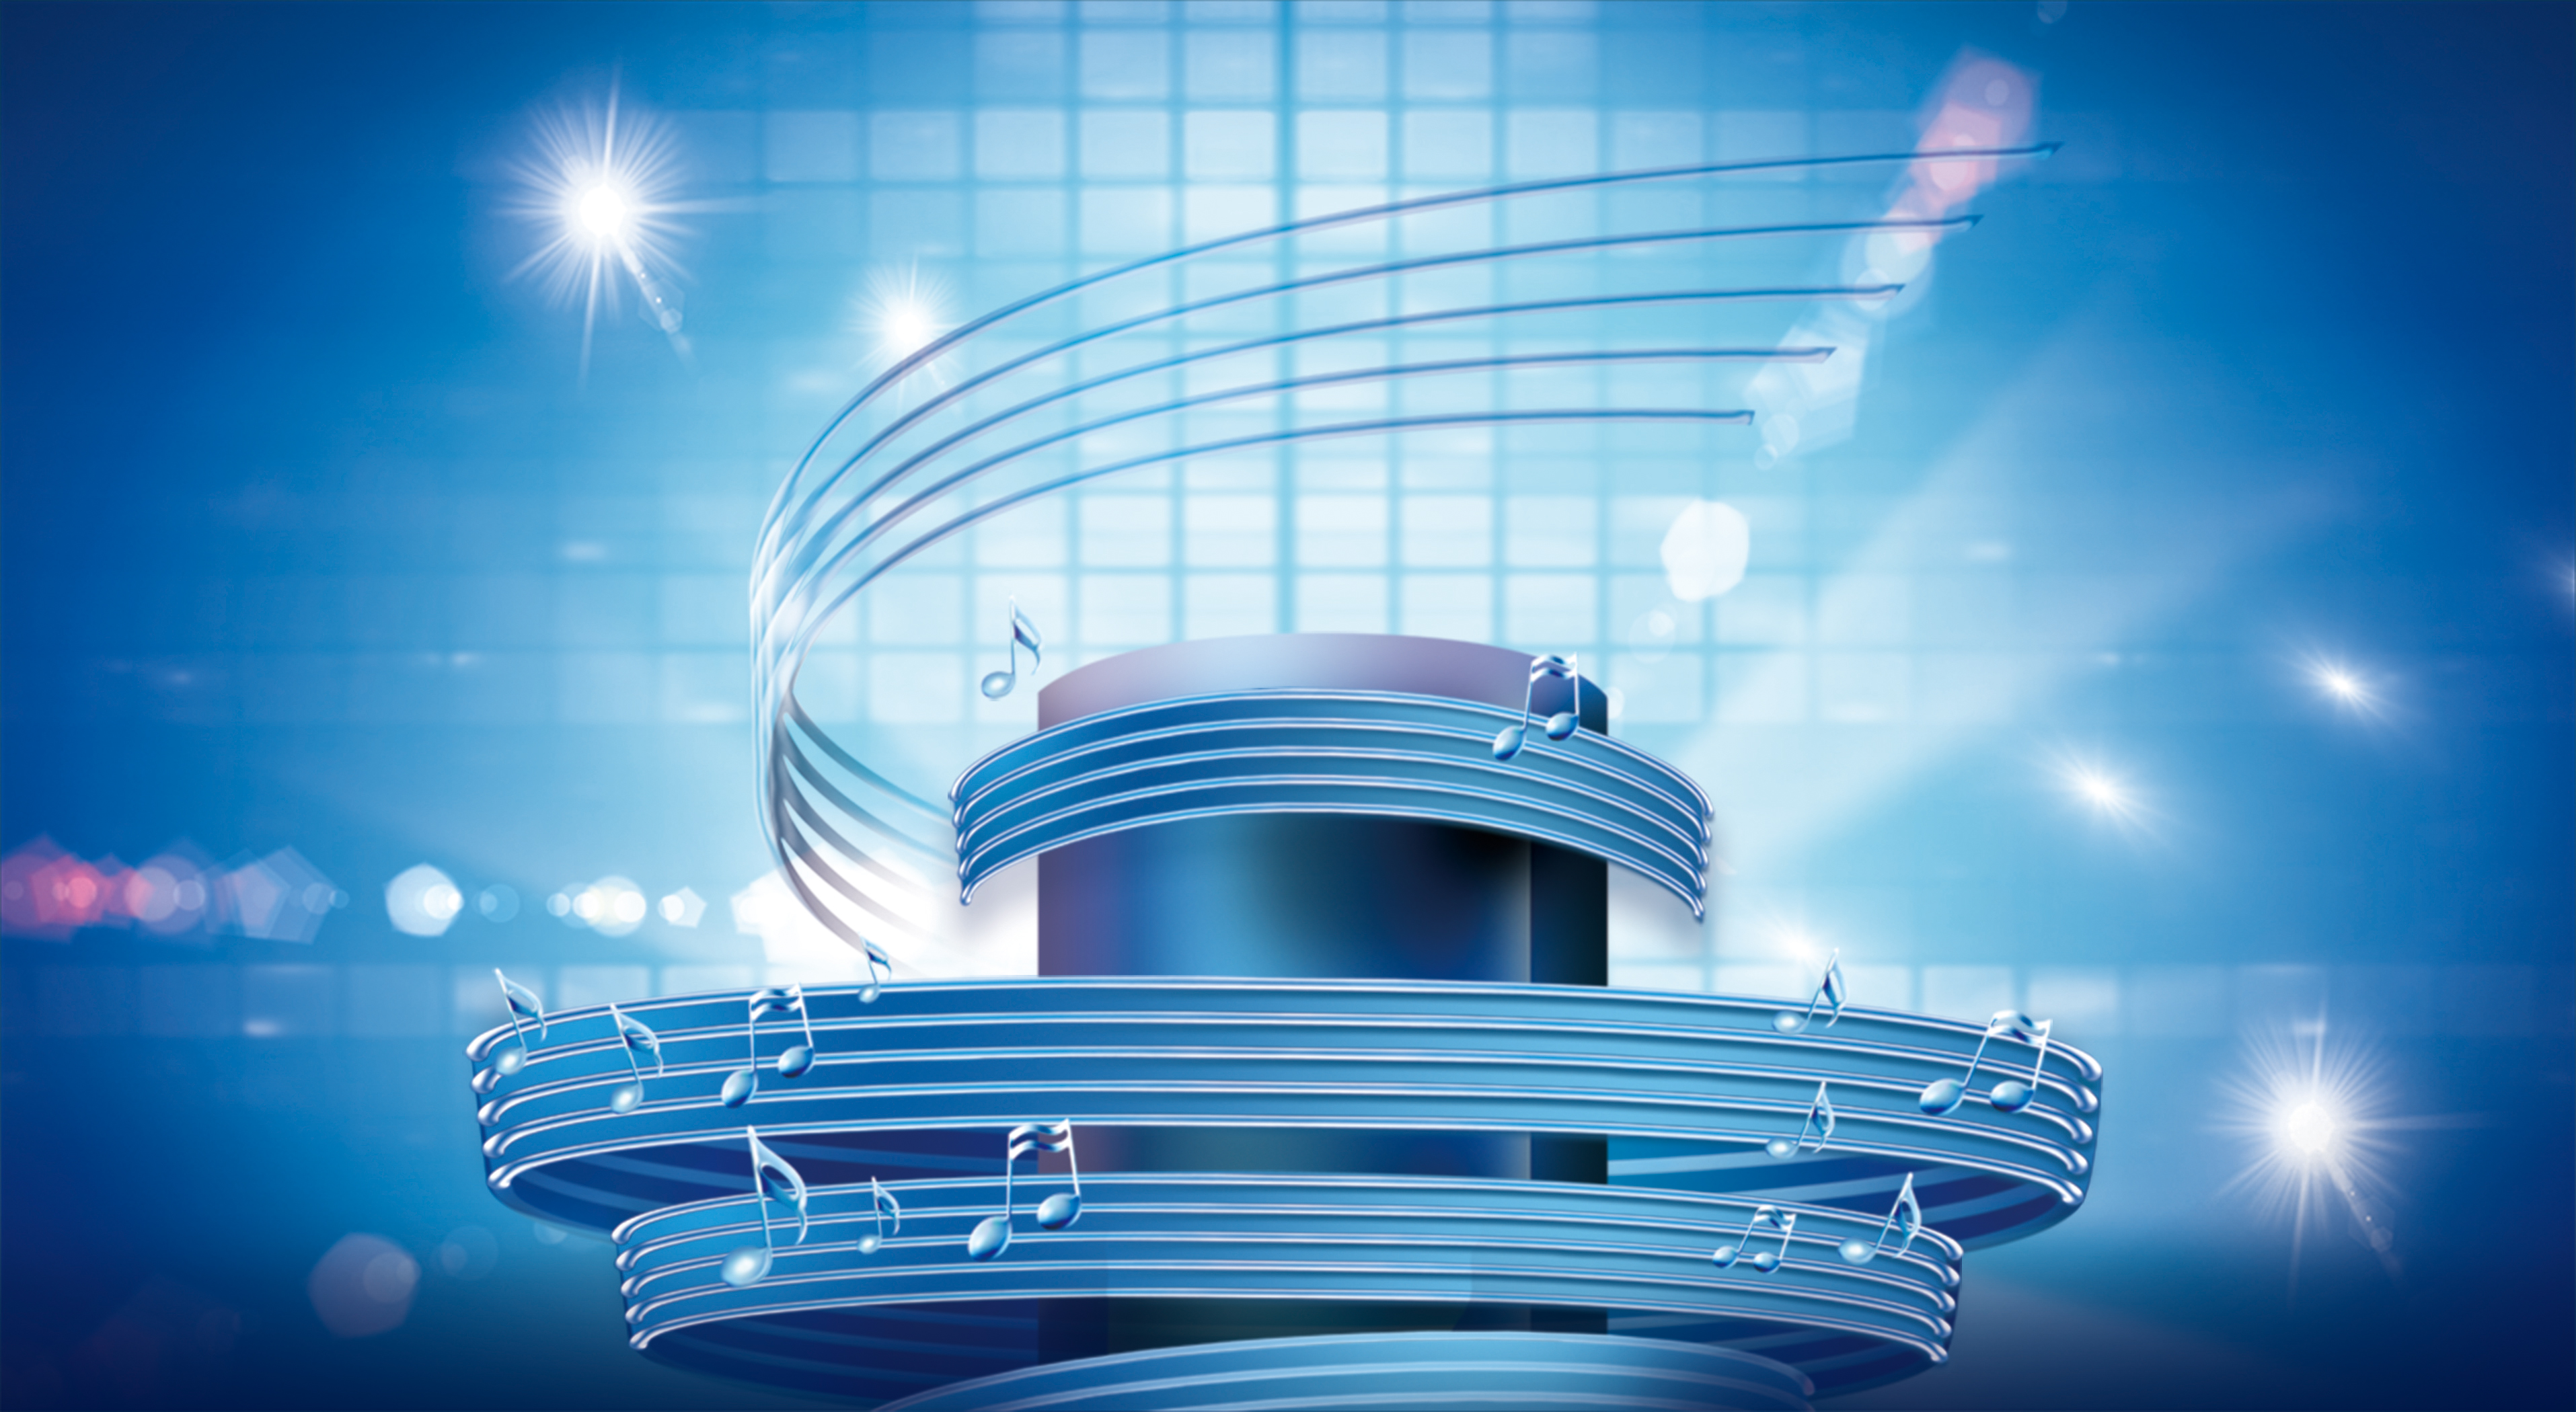 fancy music song contest poster  note  music  beautiful